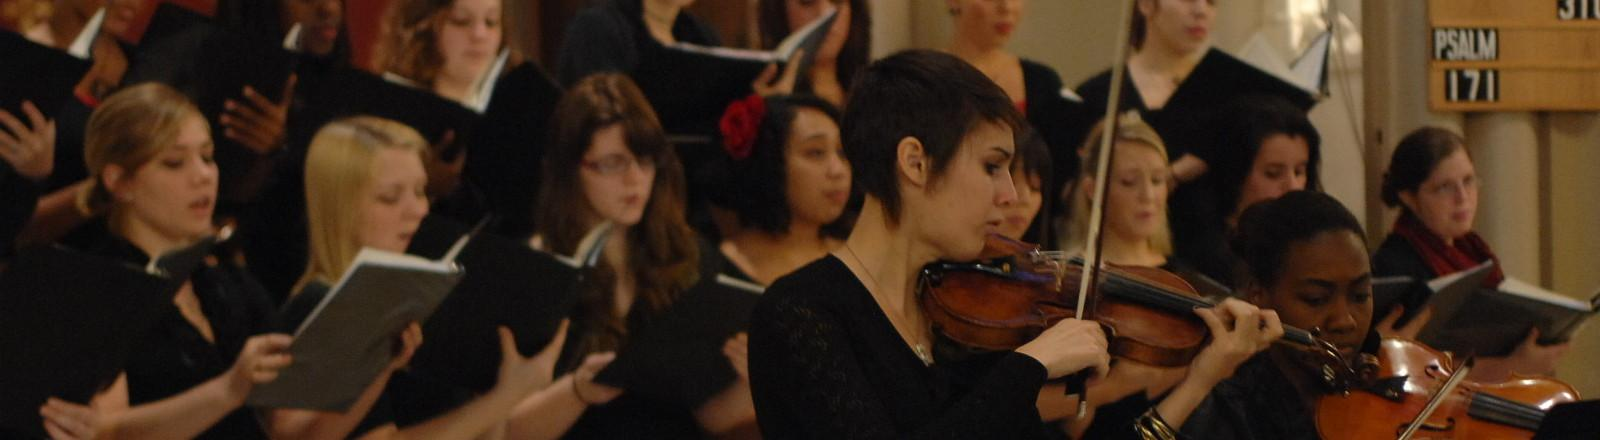 loyola student playing the violin while the choir is singing in the background